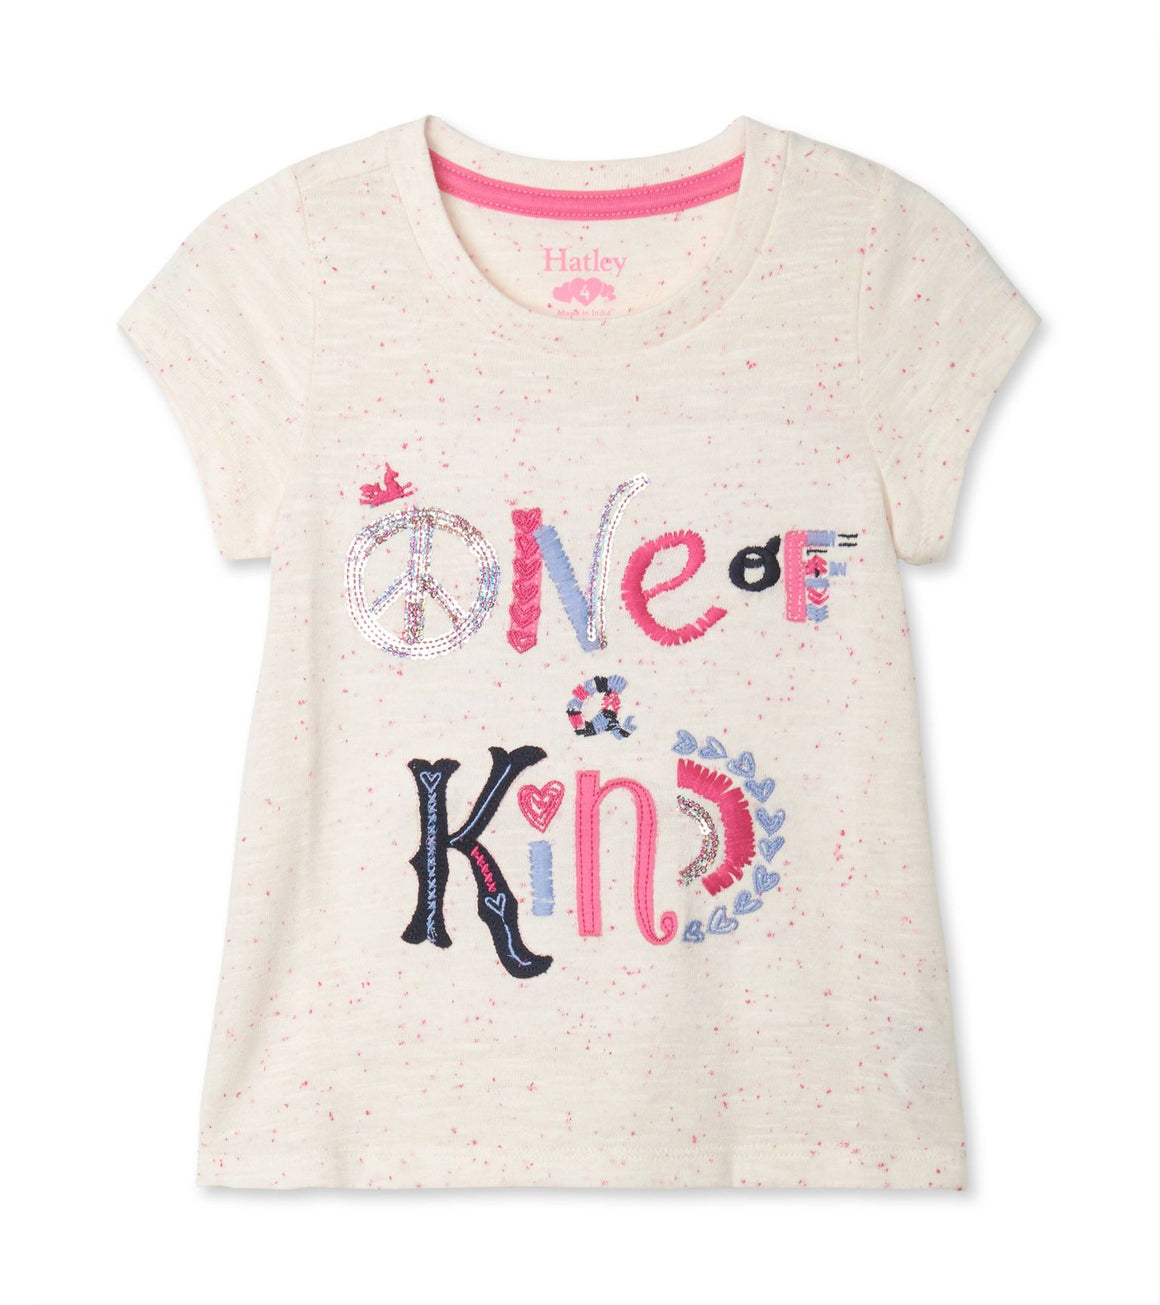 Hatley | One of a Kind Graphic Tee